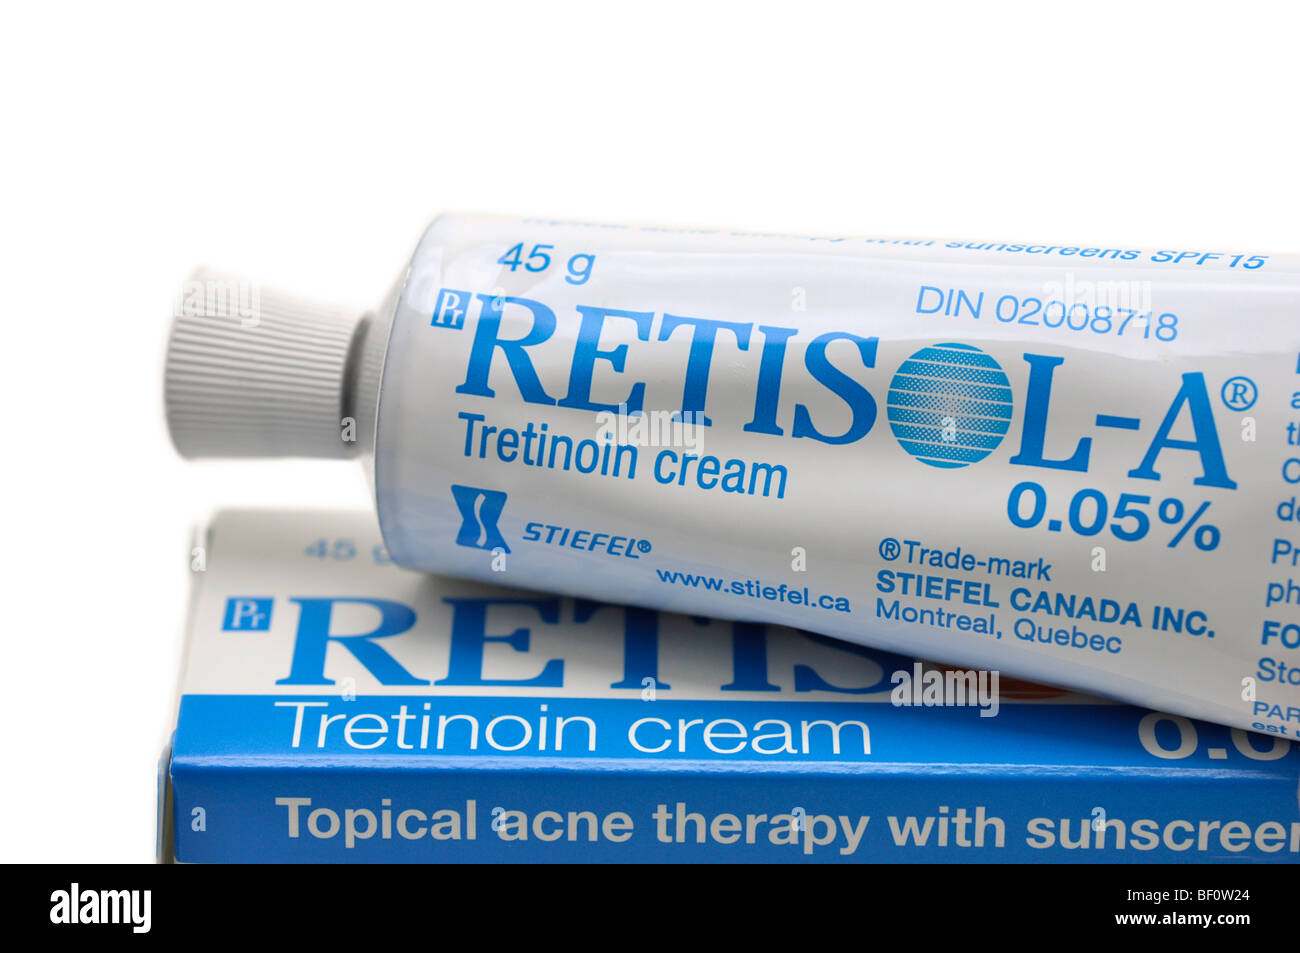 Tretinoin Cream - Topical Acne Therapy Stock Photo